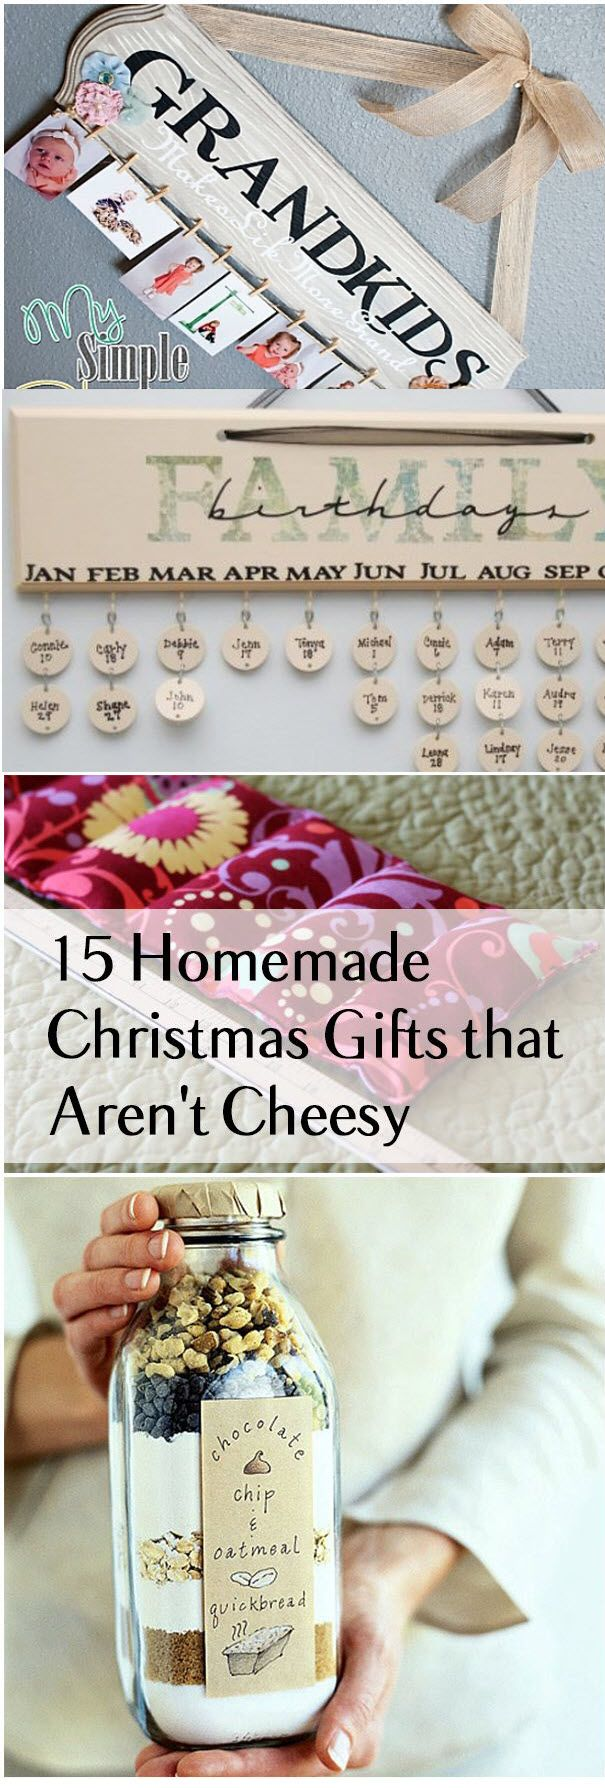 15 Homemade Christmas Gifts That Aren't Cheesy                                                                                                                                                                                 More